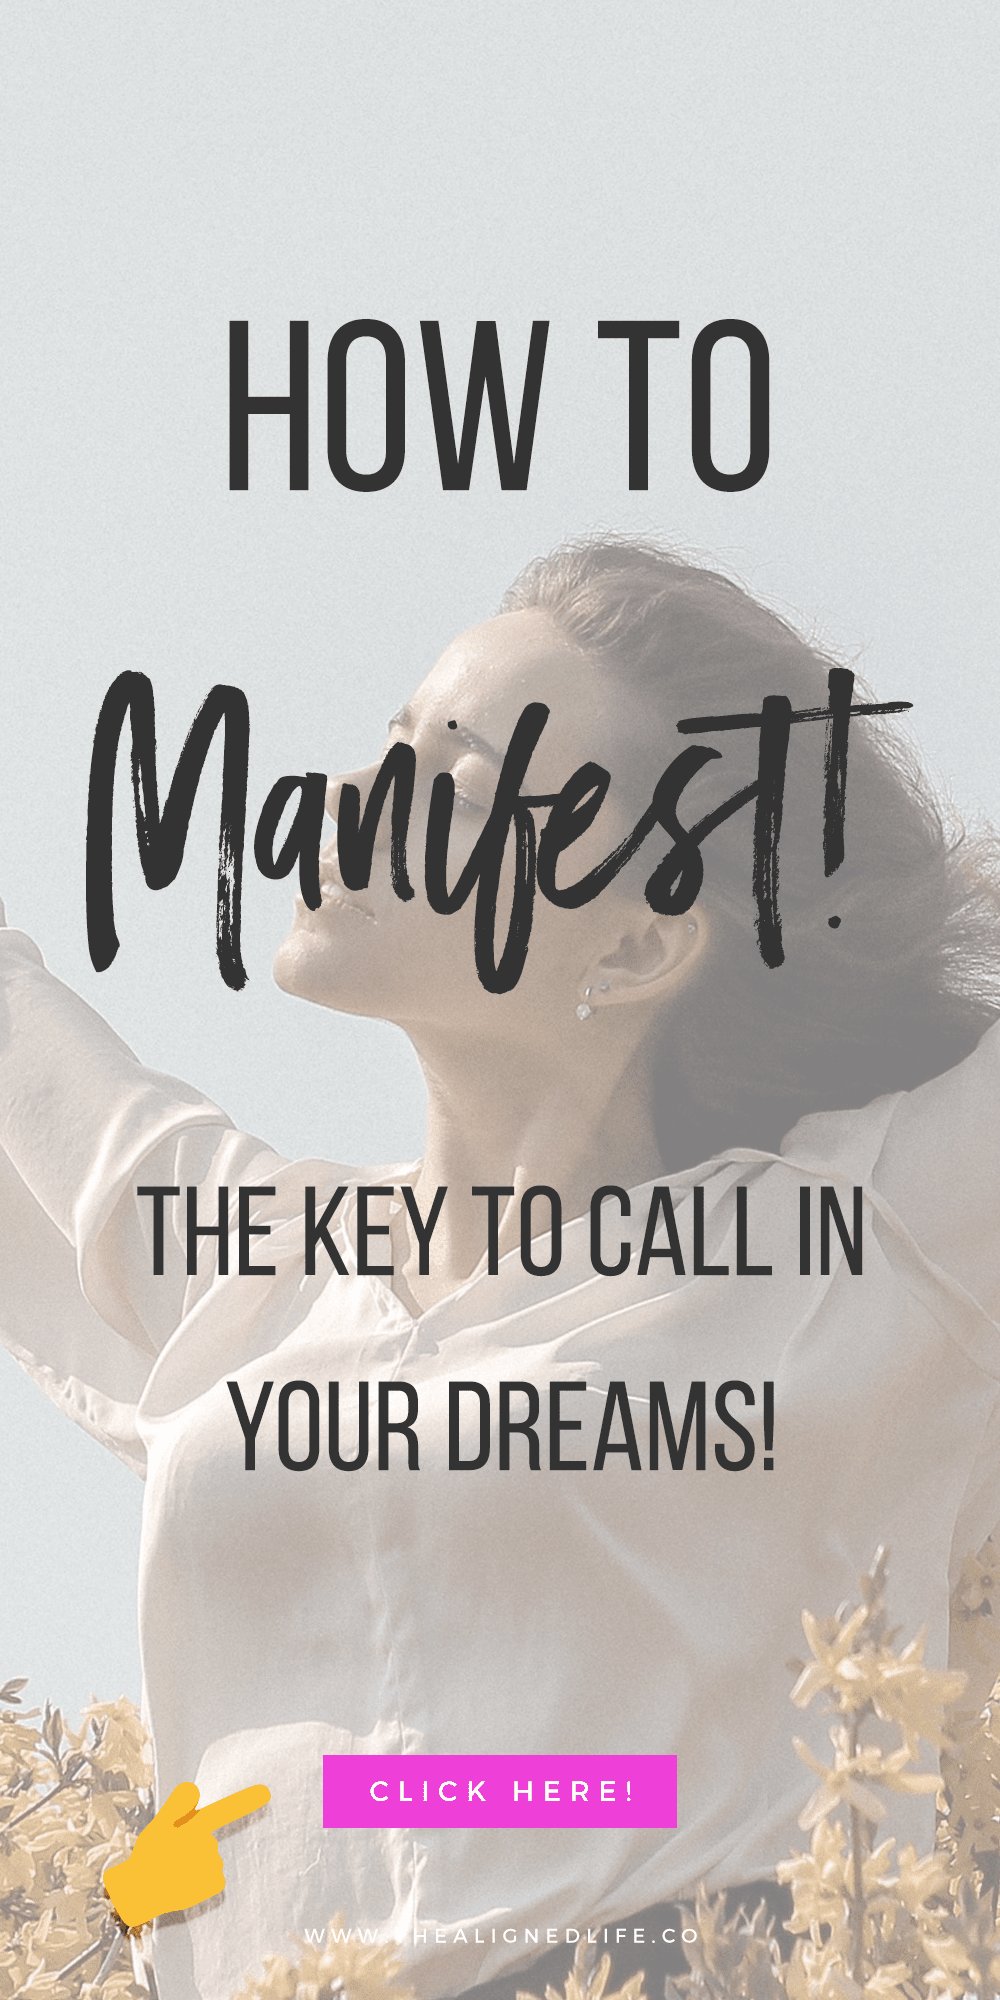 How To Manifest Anything You Want! 6 Secrets To Manifestation Success